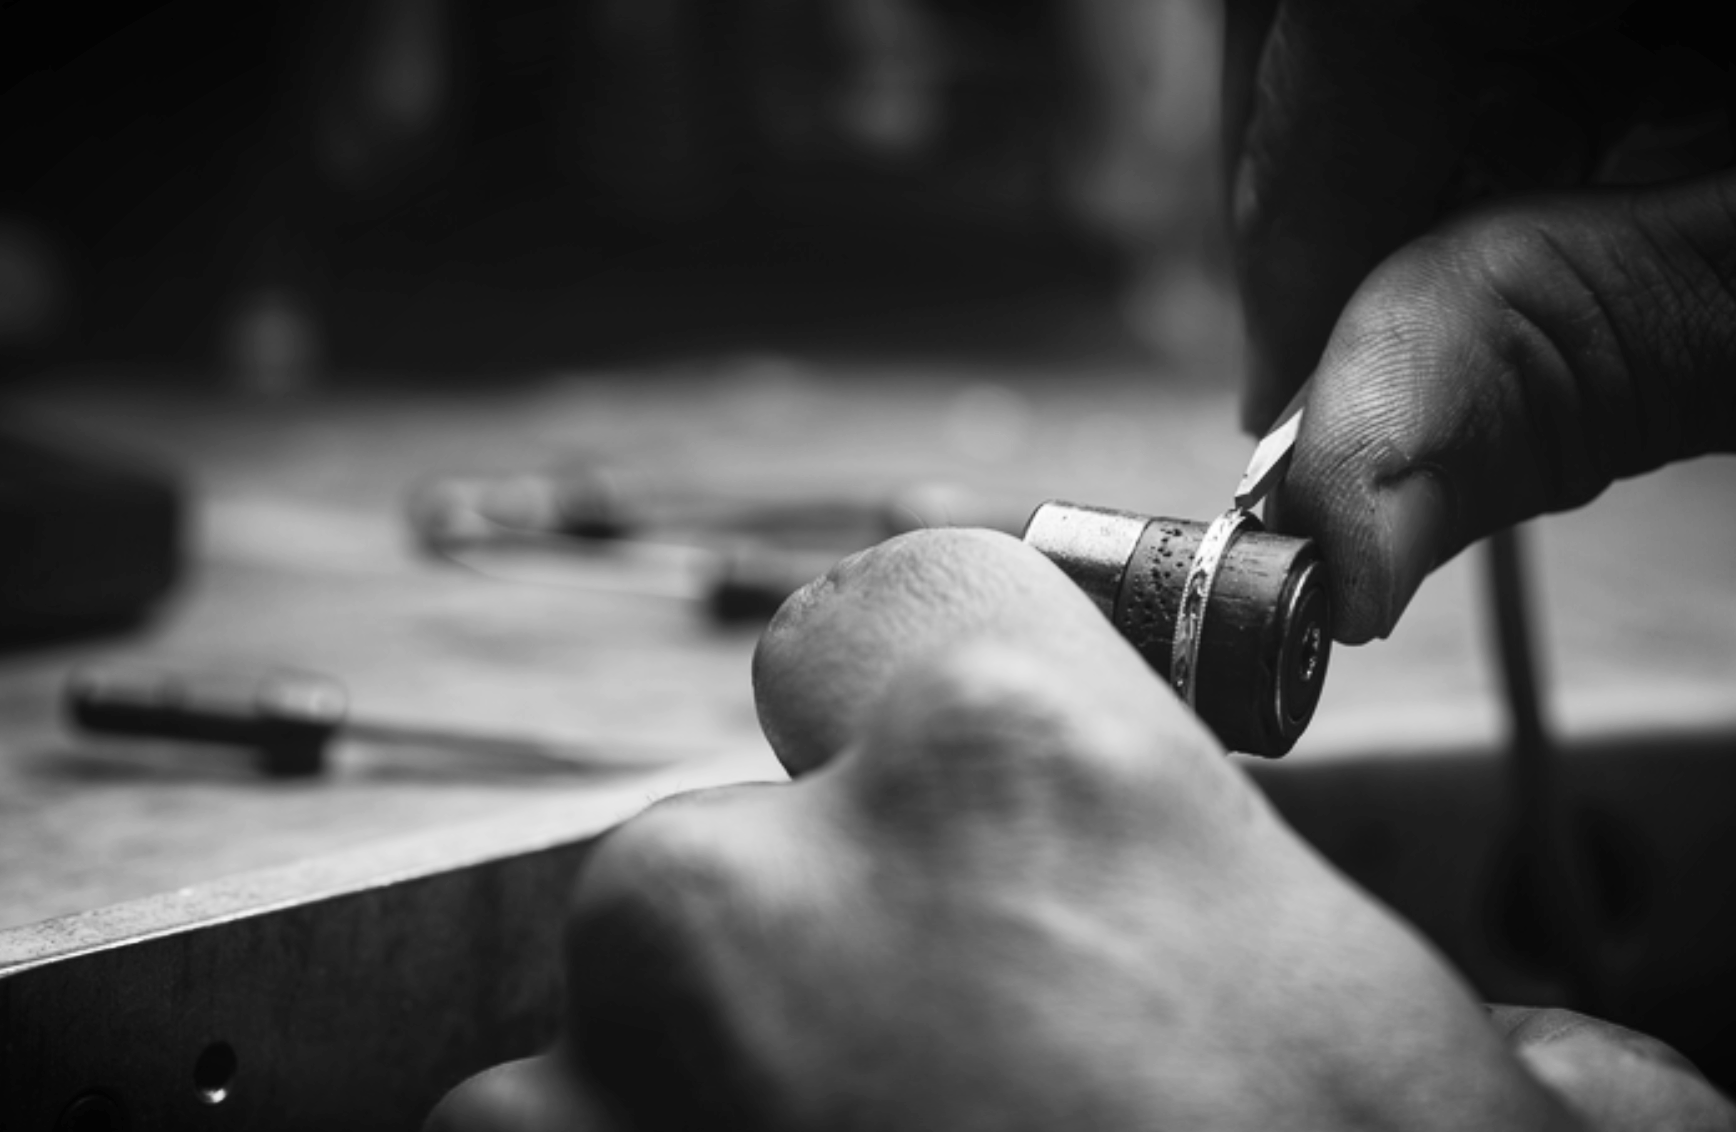 We do it all - We have a full in-house repair department on hand to repair, restore, or refurbish any piece of jewelry you have using the latest state of the art tools and technology.Whether you need a simple solder of a broken chain,a ring resized, or a stone mounted in a new ring, we do it all.